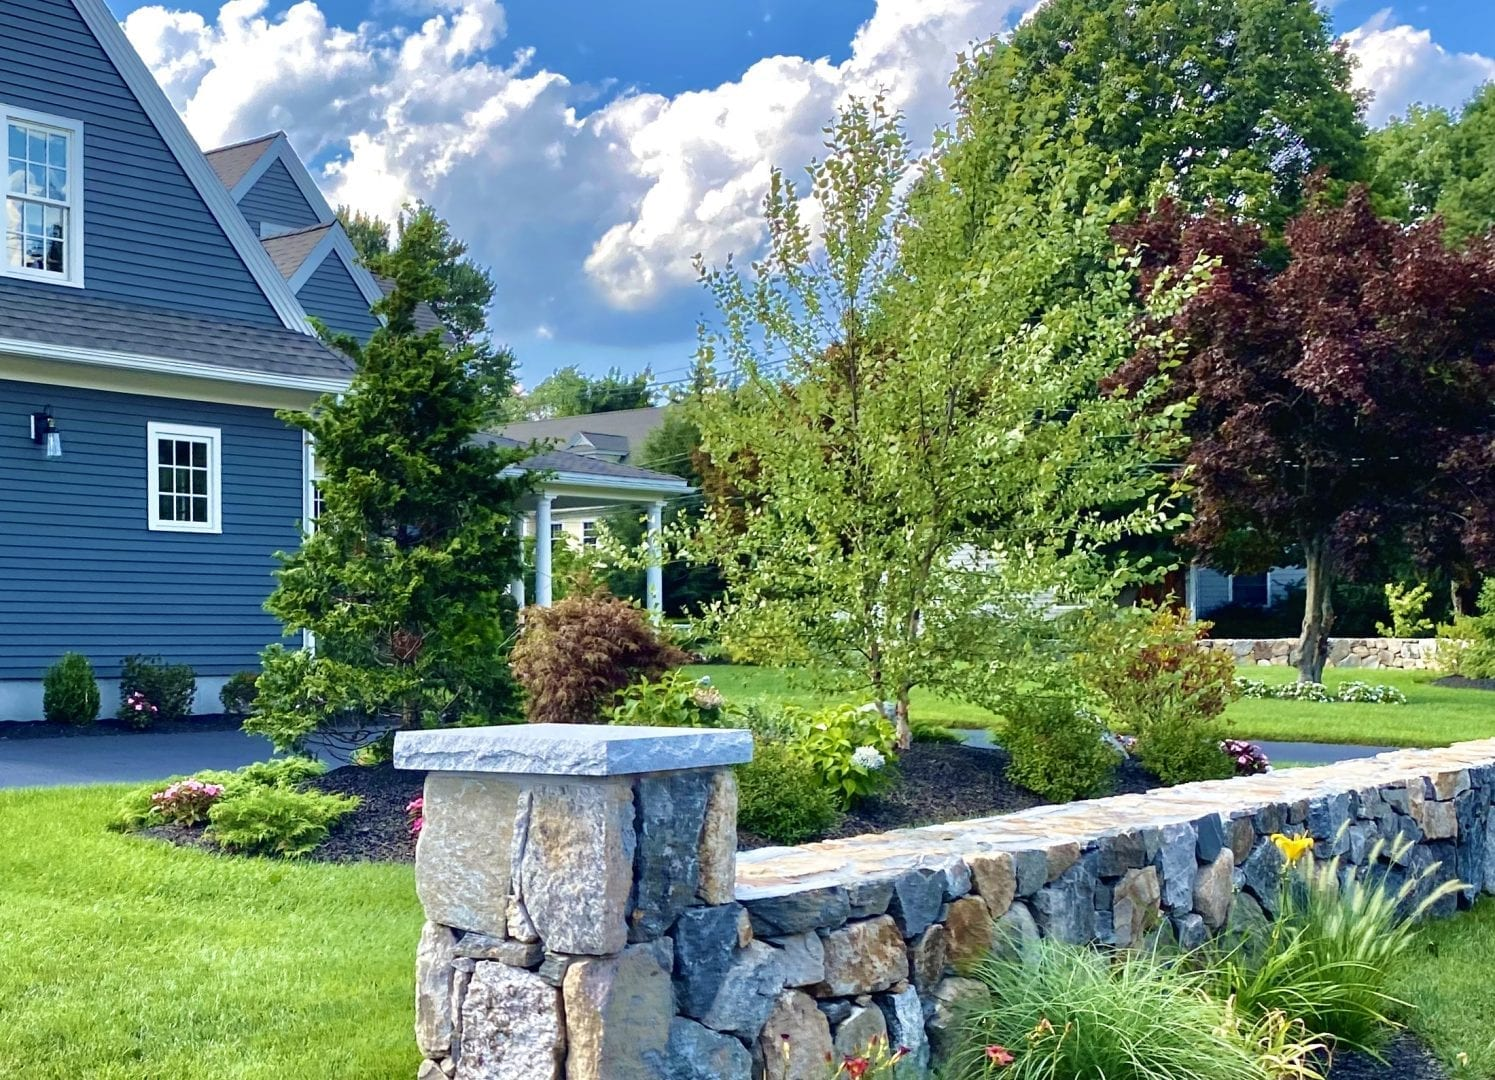 The side yard of a home that we recently landscape designed with trees and shrubs. There are rock walls surrounding the yard.